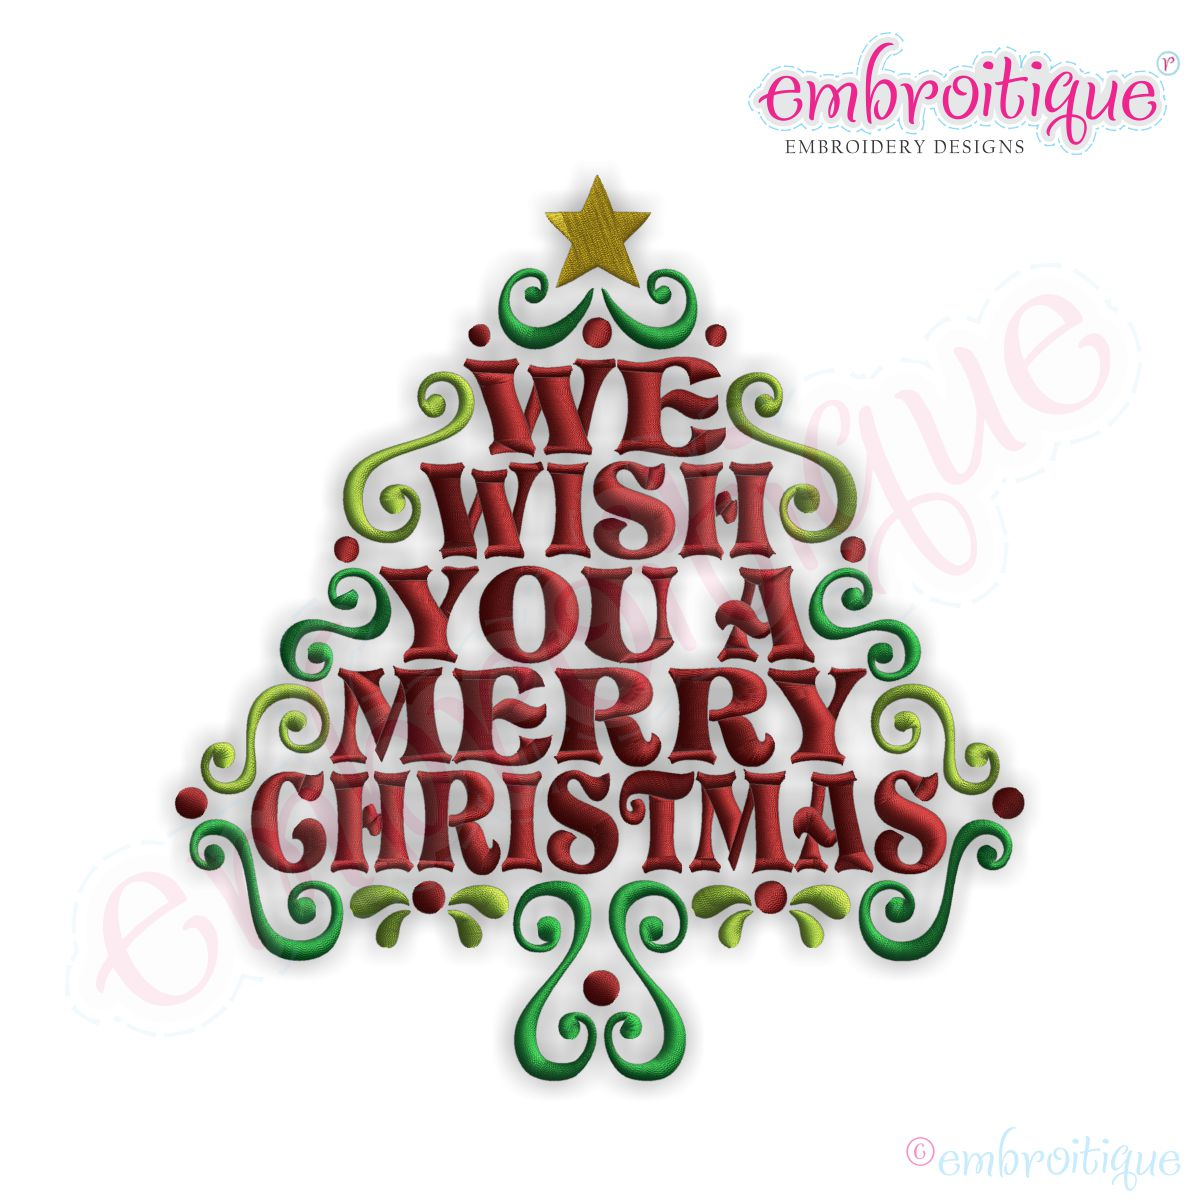 We Wish You a Merry Christmas Designs